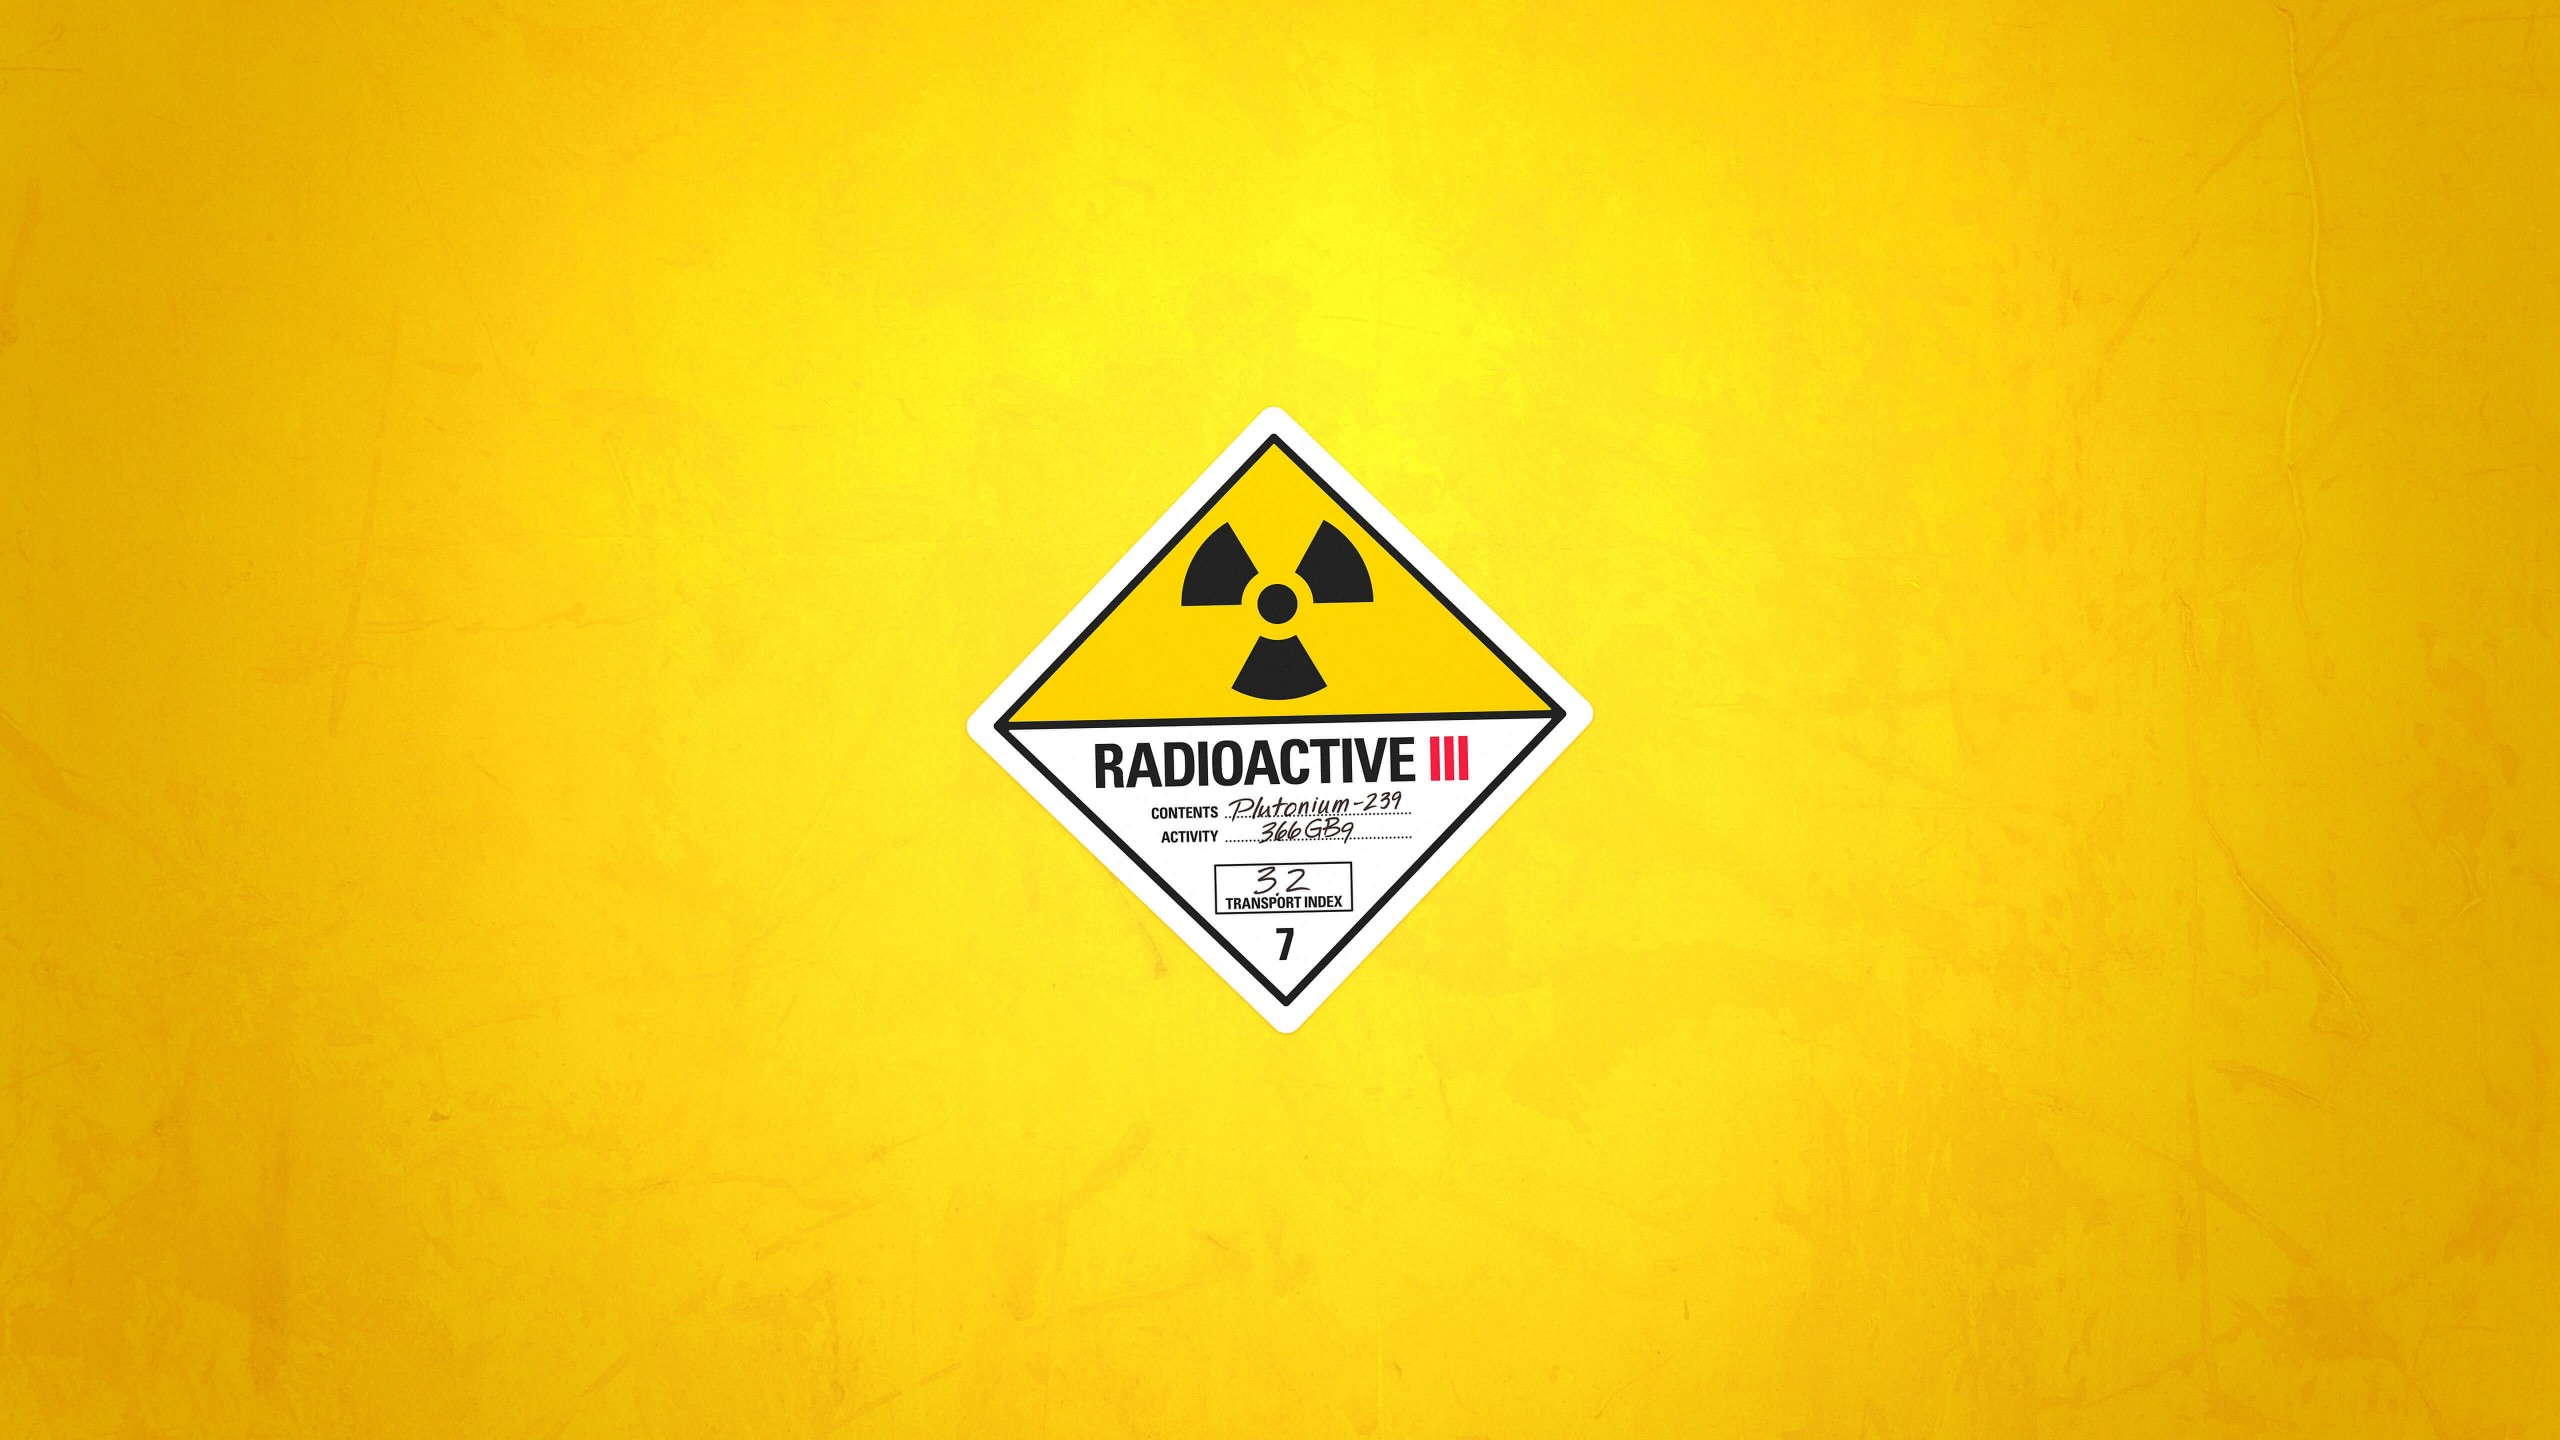 Radioactive Wallpaper for Social Media YouTube Channel Art